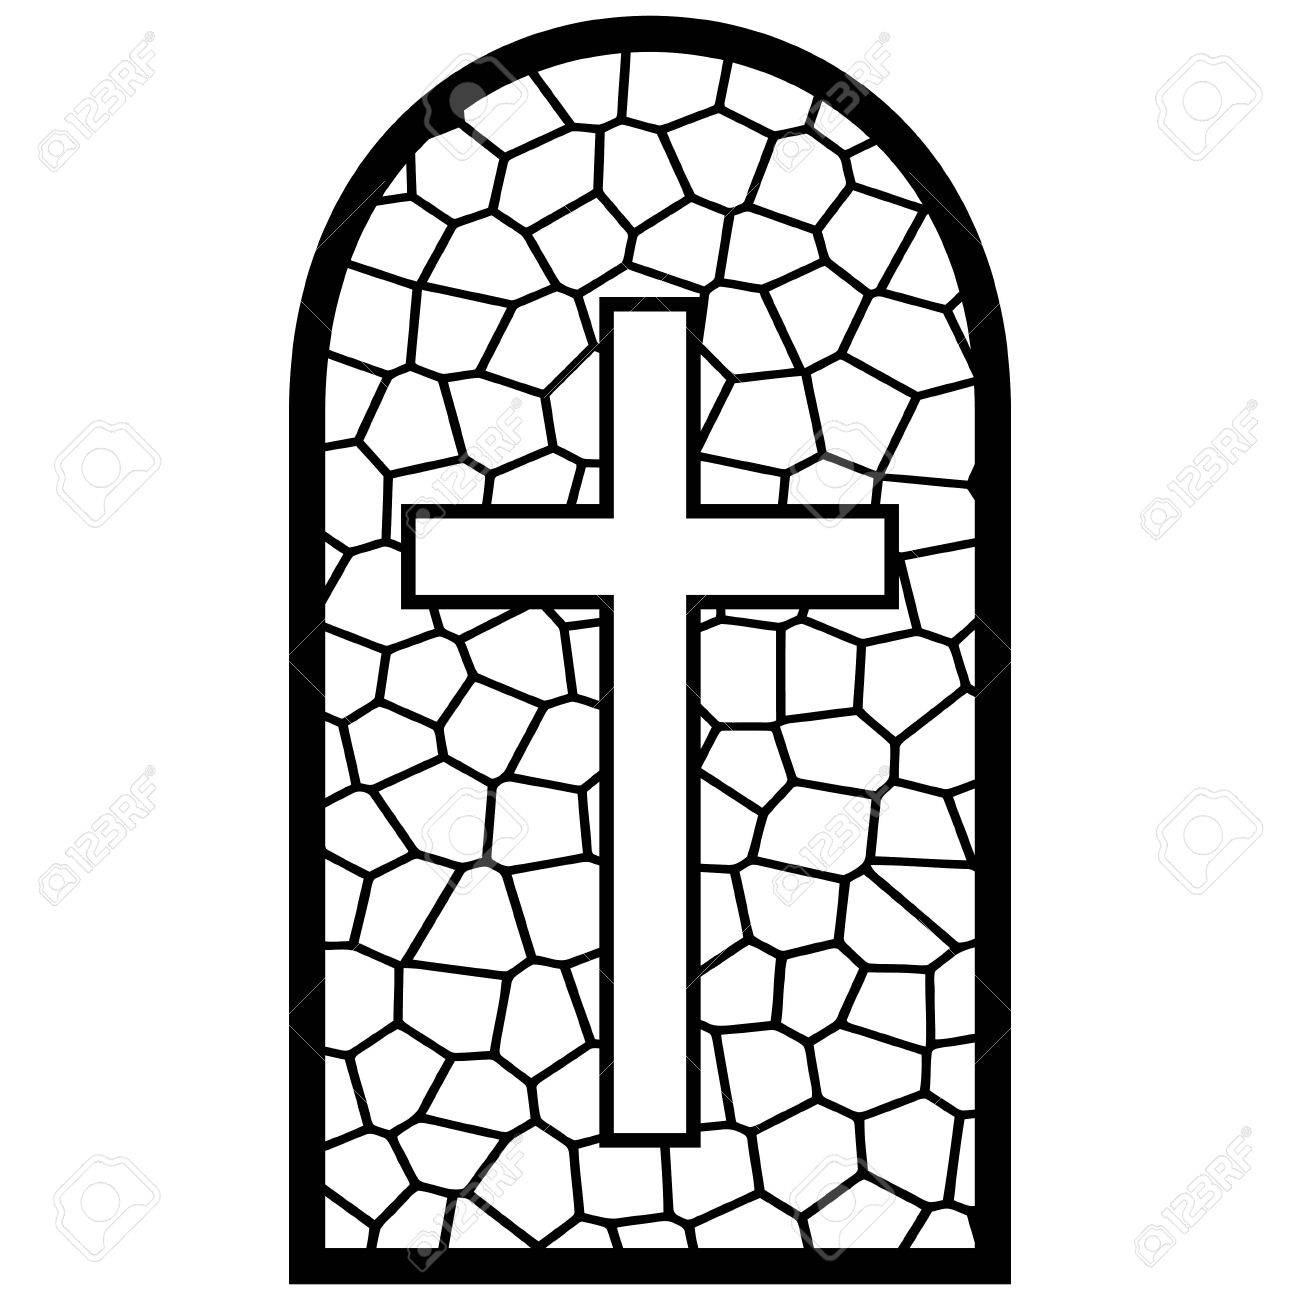 hight resolution of stained glass cross clipart 3